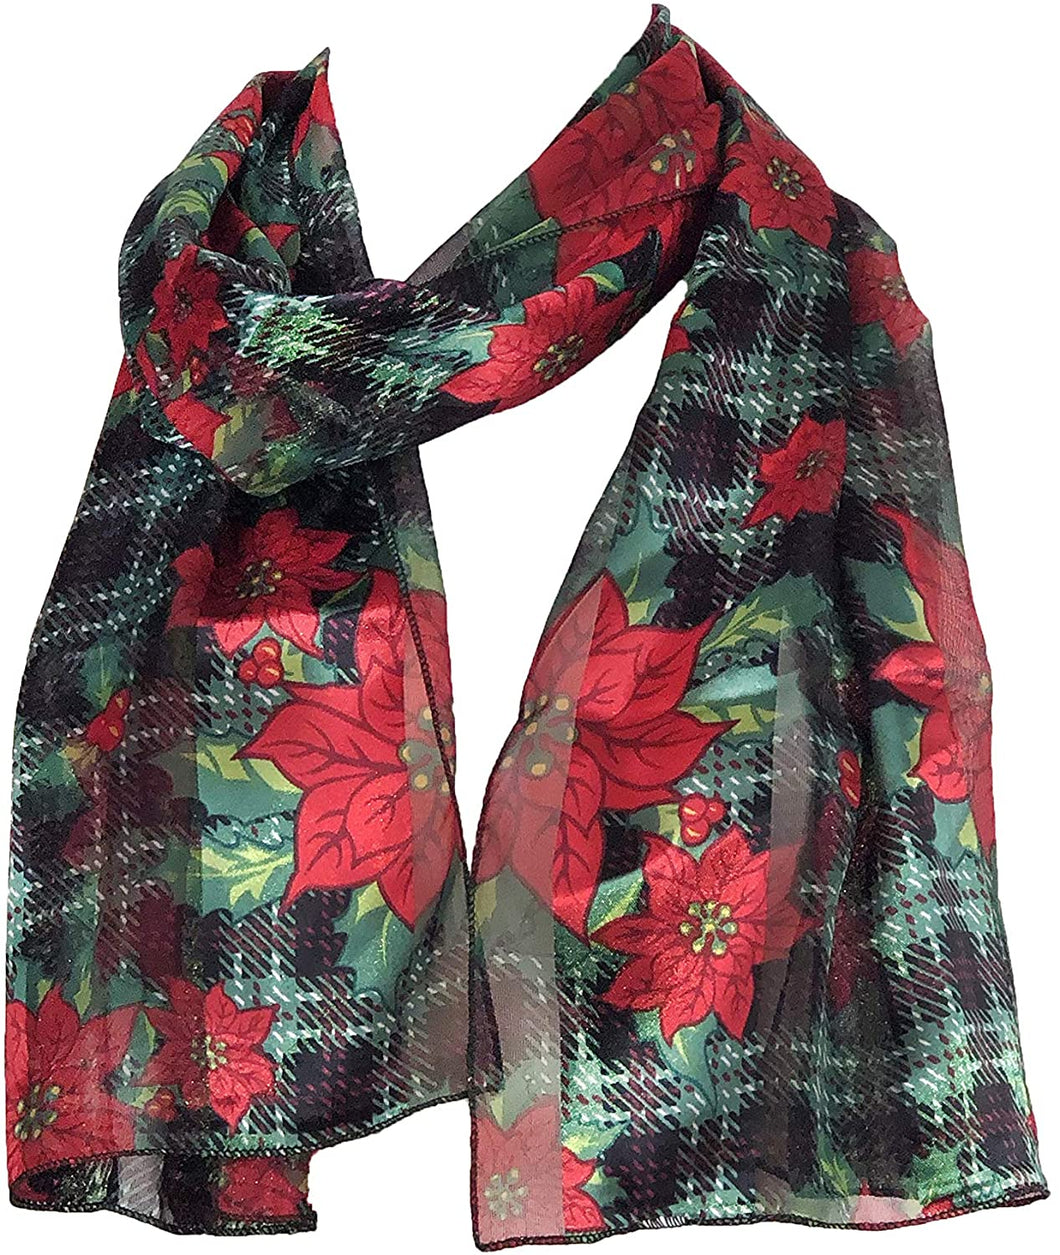 Pamper Yourself Now Black with red and Green Poinsettia Flower Design Scarf Thin Pretty Christmas Scarf